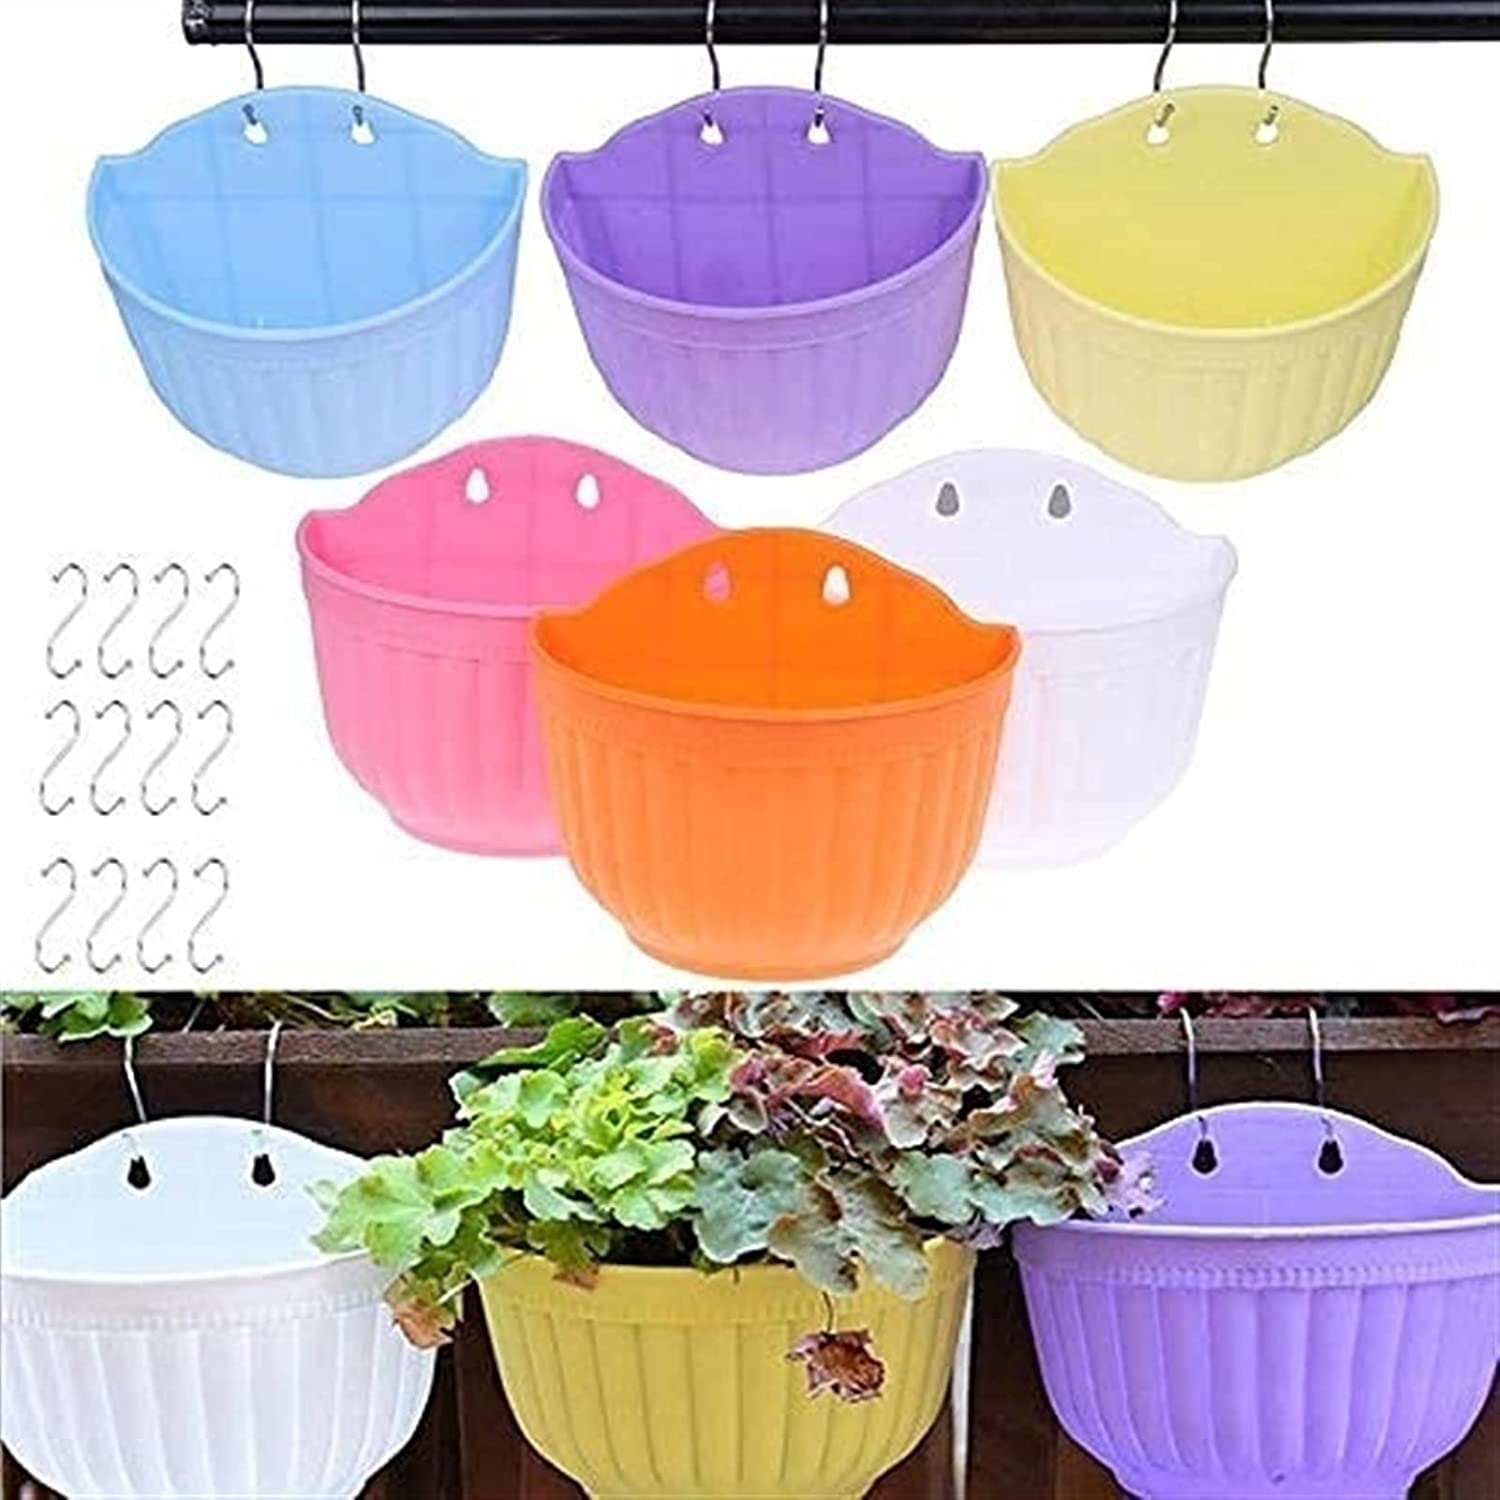 Pots Flower Pot Wall Product Max 59% OFF Hanging Balcony Flo